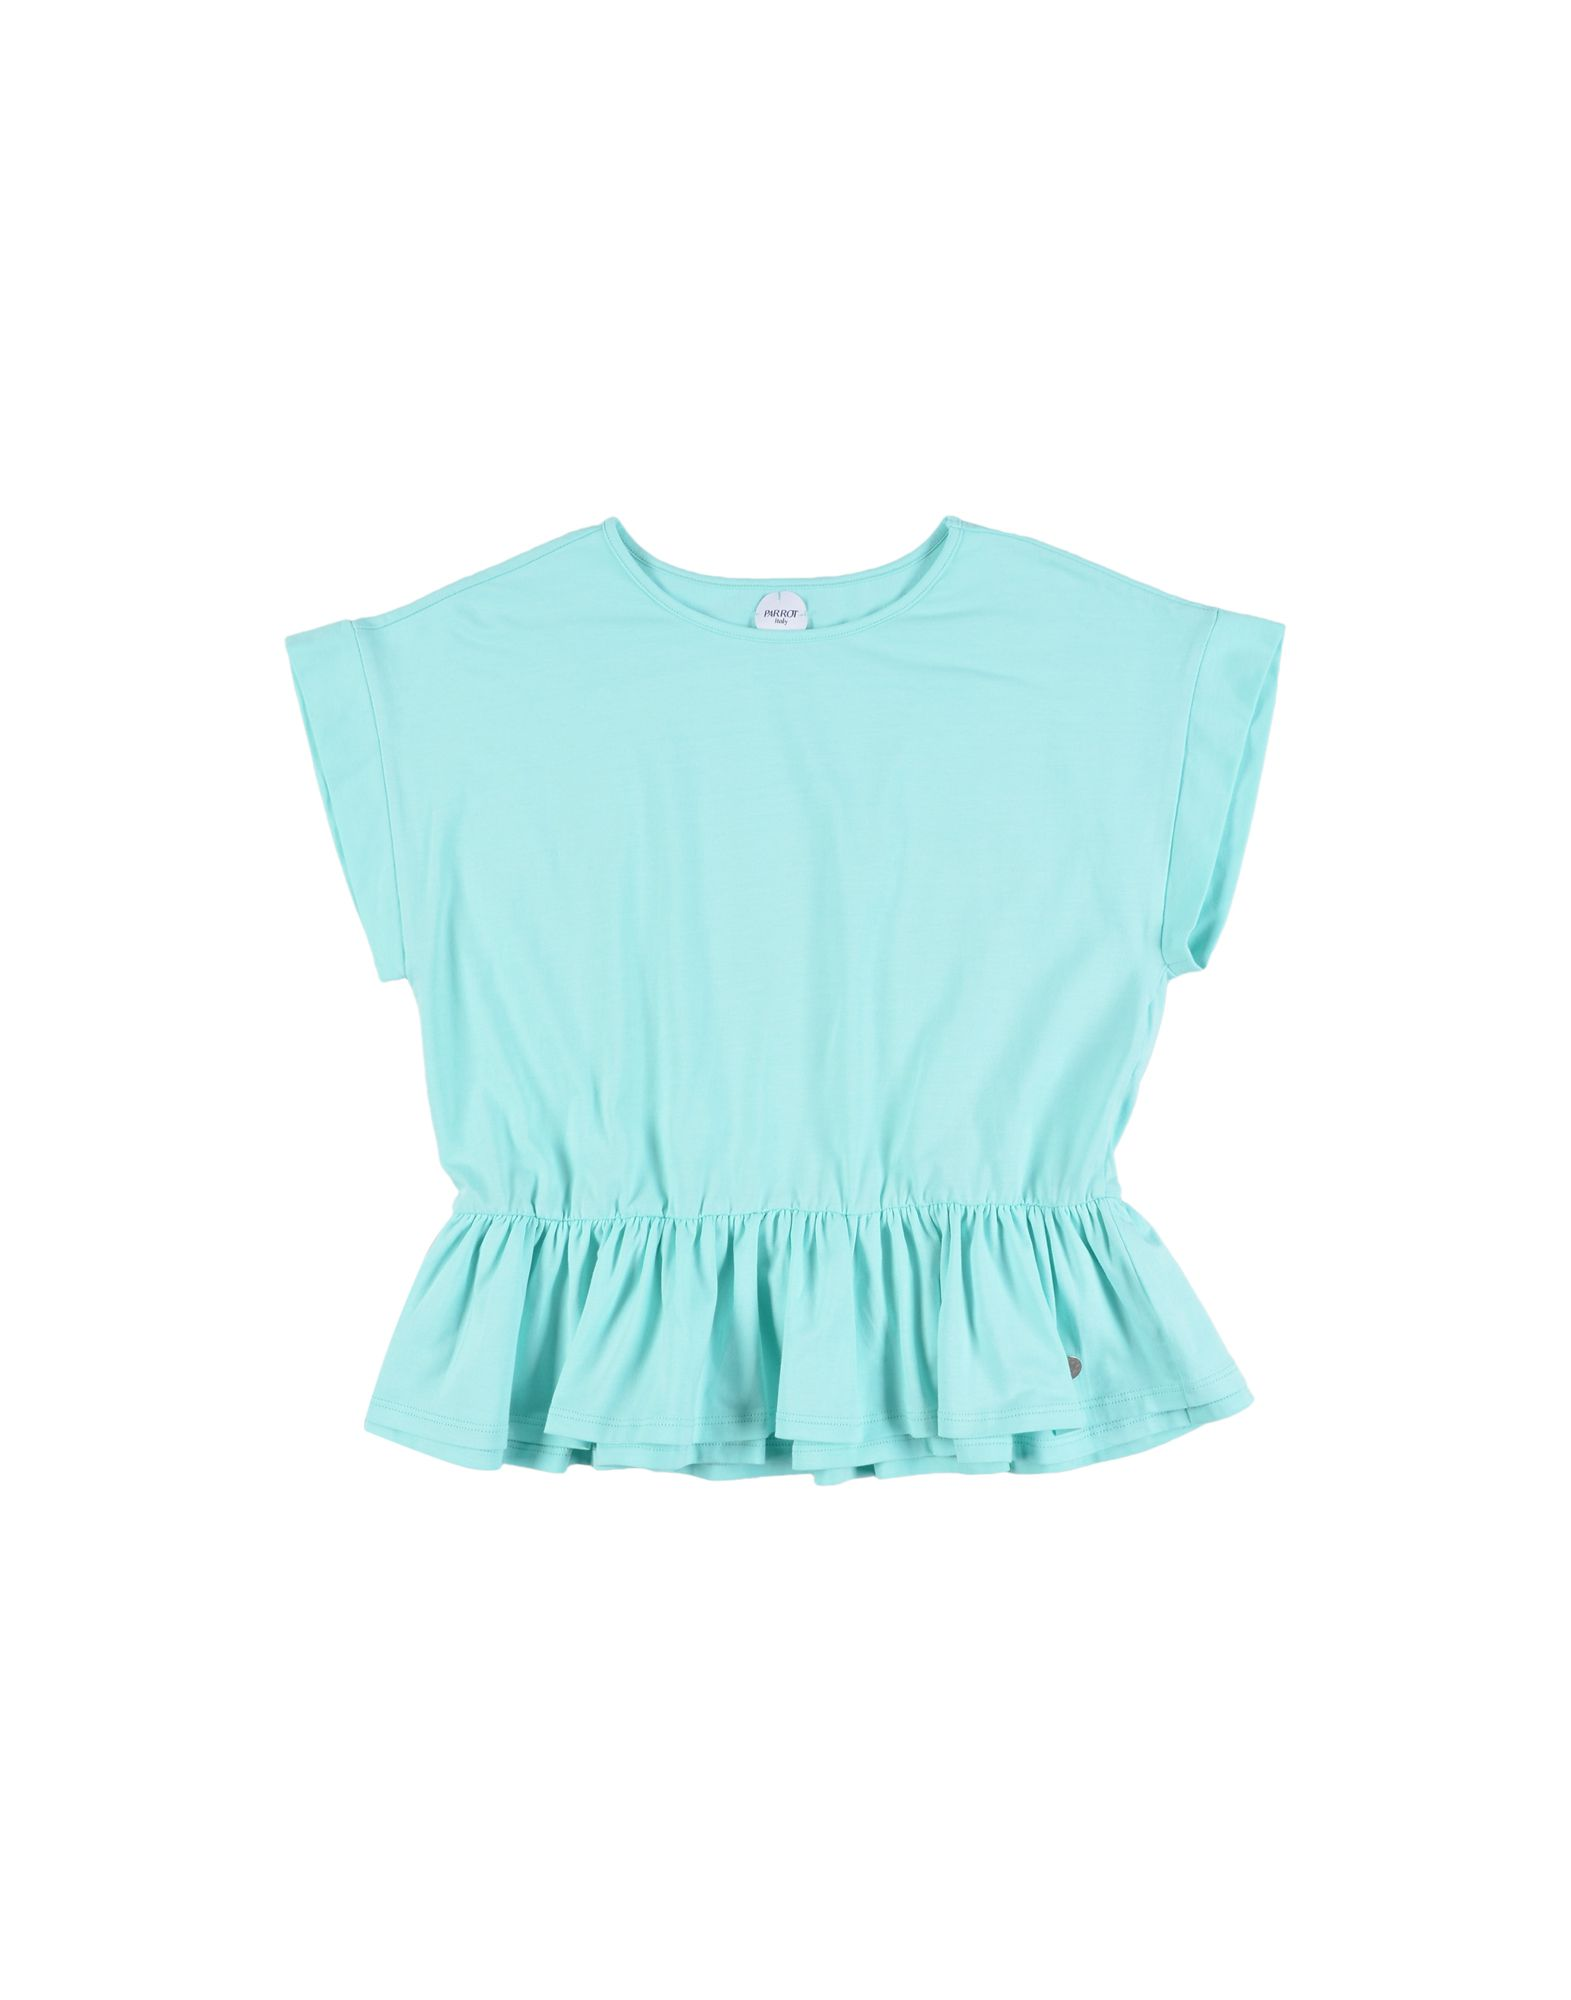 Parrot Kids' T-shirts In Blue